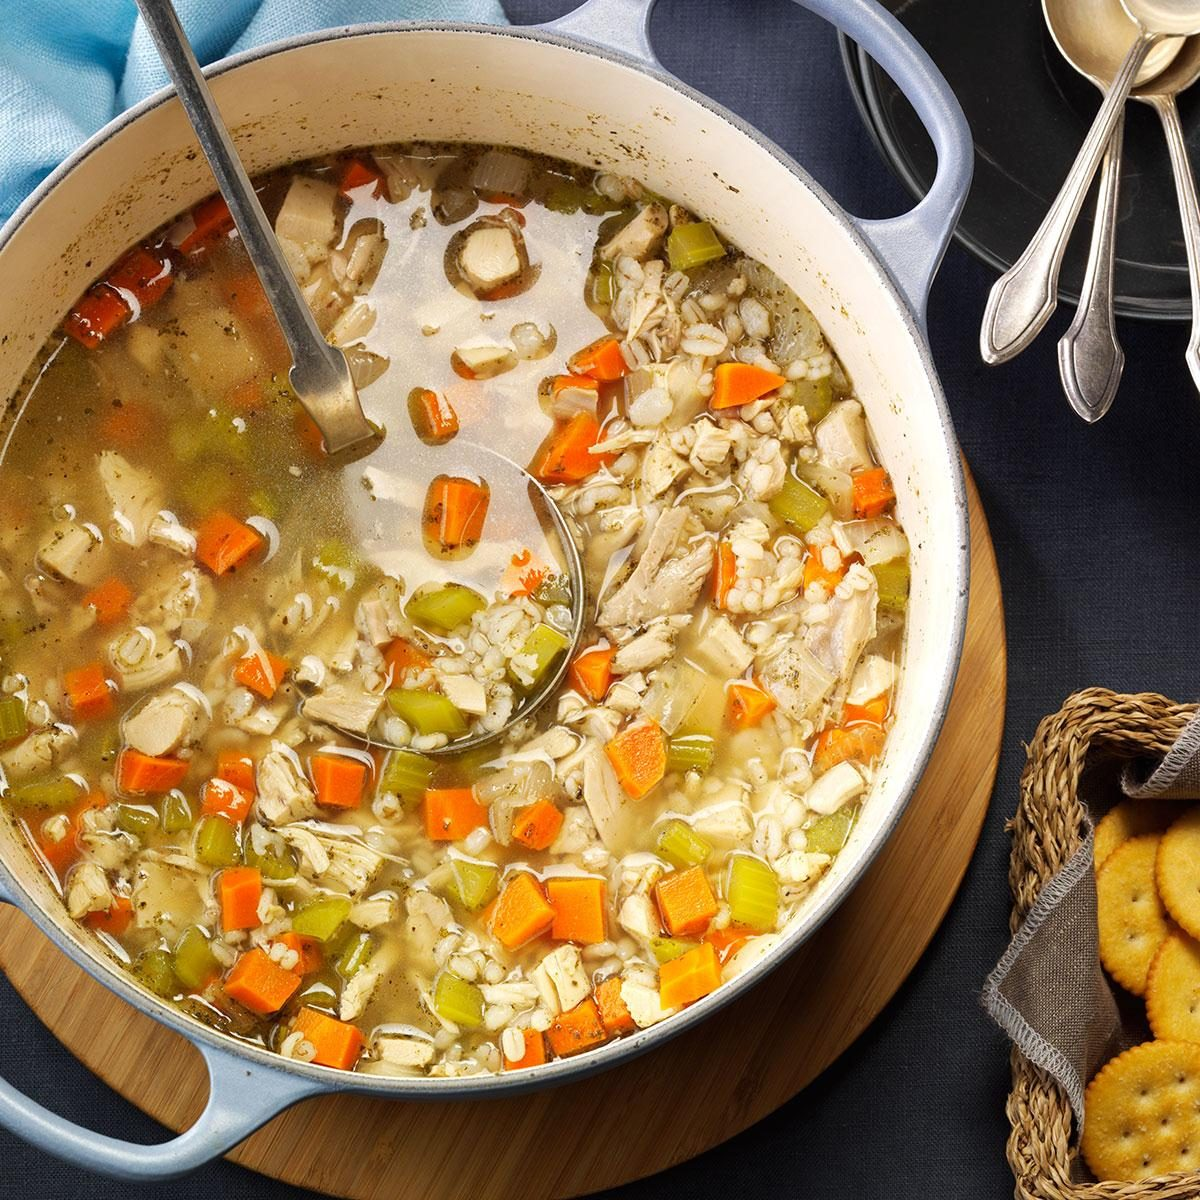 Taste Of Home How To Make Chicken Noodle Soup Recipes